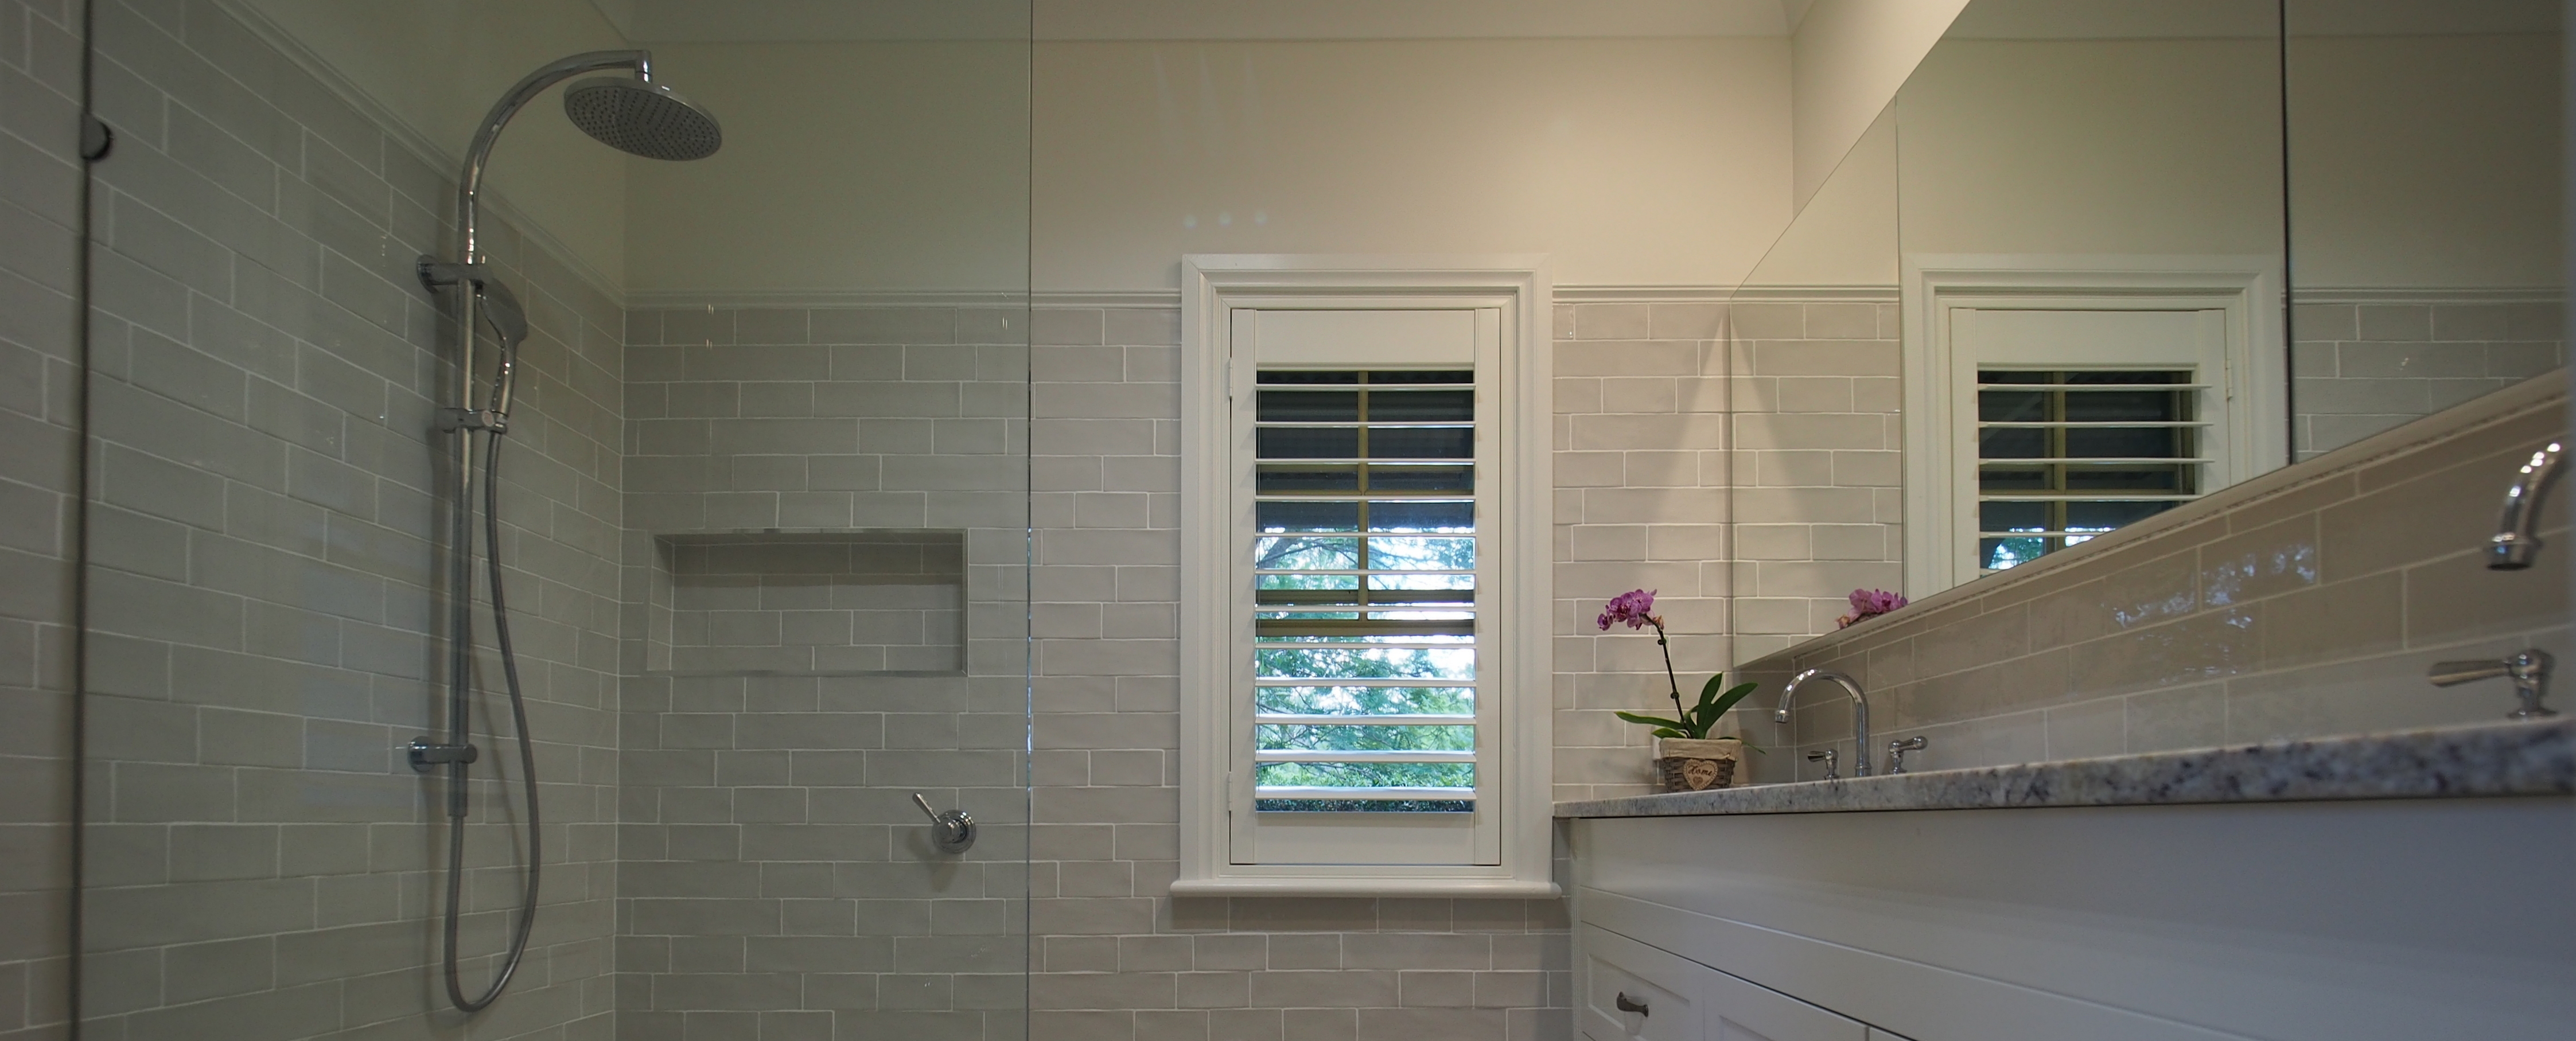 Bathroom Renovation Cost Brisbane brisbane bathroom renovations | north brisbane